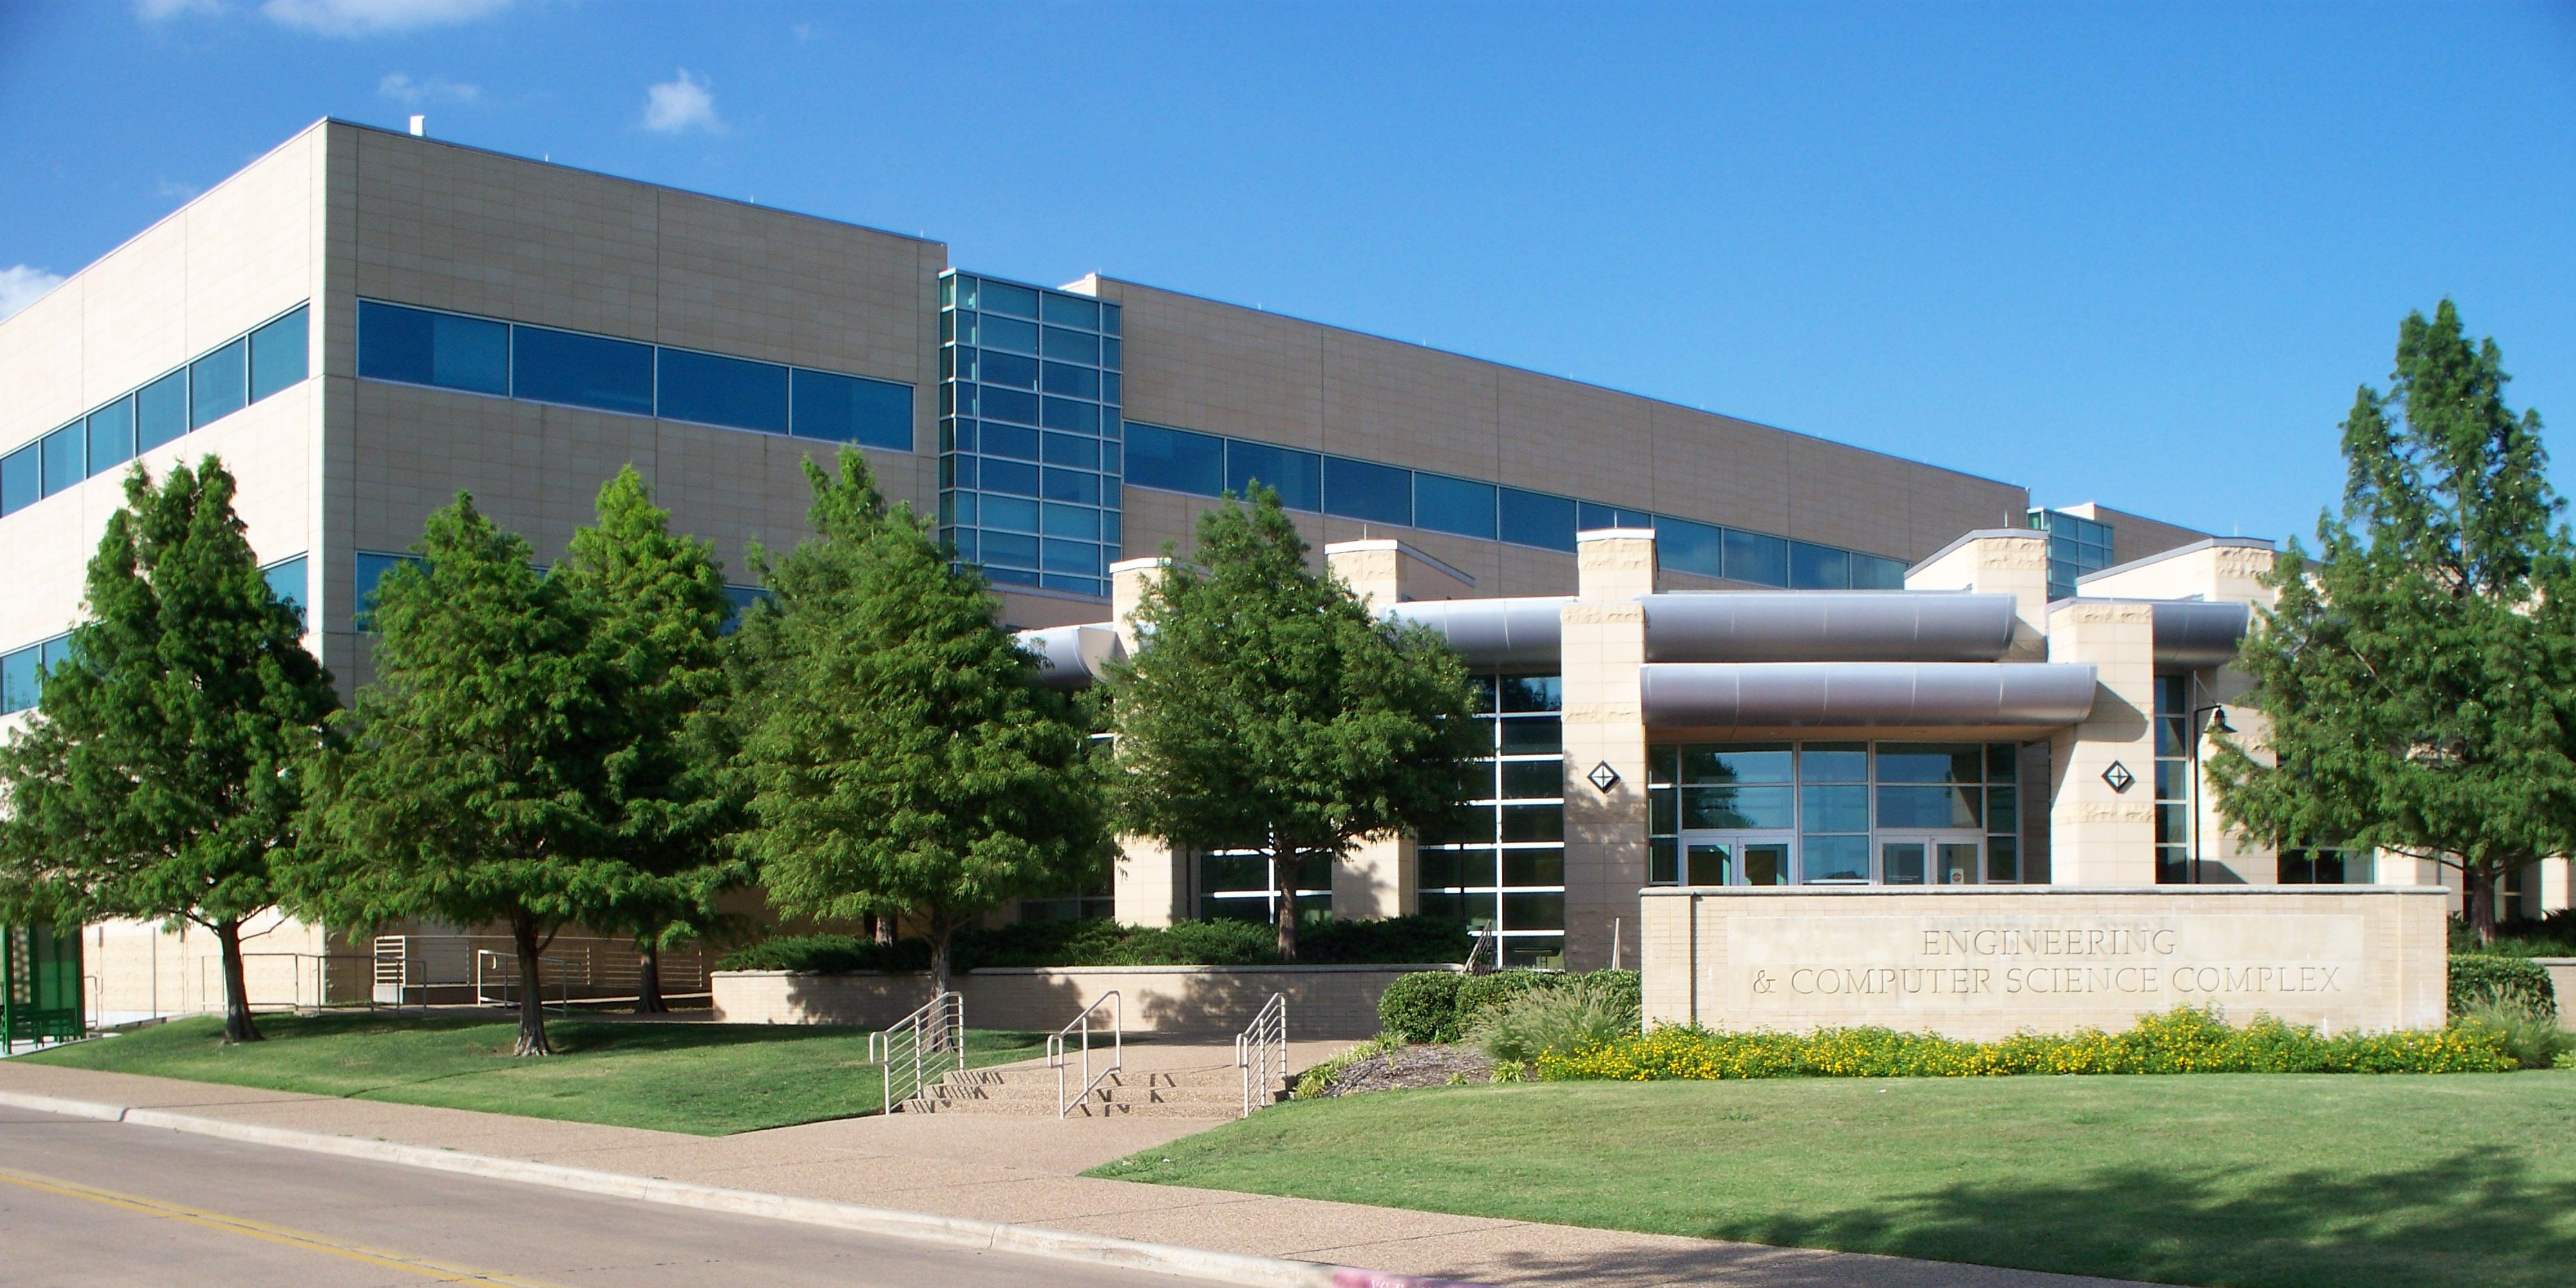 File engineering and computer science complex university of texas at